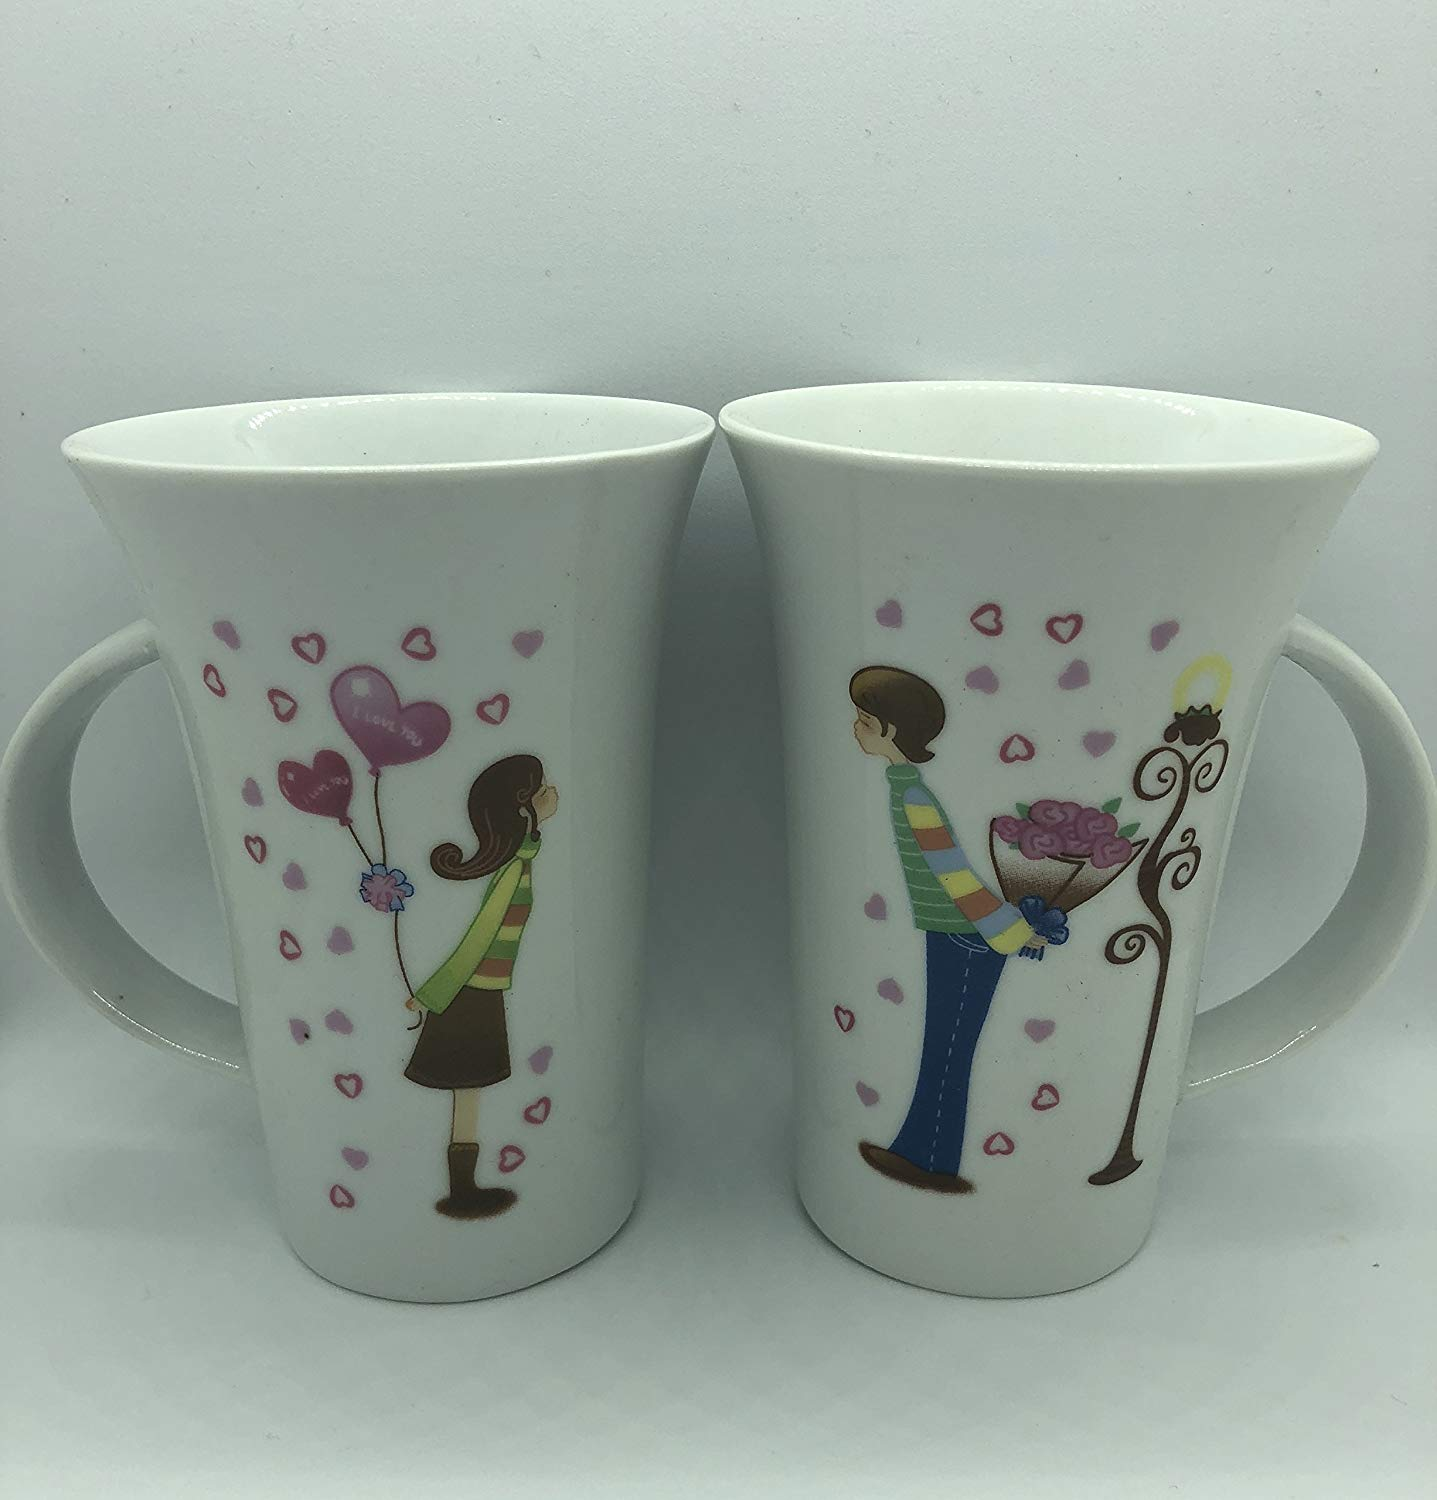 I Love You His and Hers Coffee Mugs- Couple Mugs Set, Girlfriend Gifts, Wife Gifts, Romantic Gifts for Her, Anniversary Gifts for Her/Him, Wedding Gifts for Couple, Couples Gifts, Love Gifts